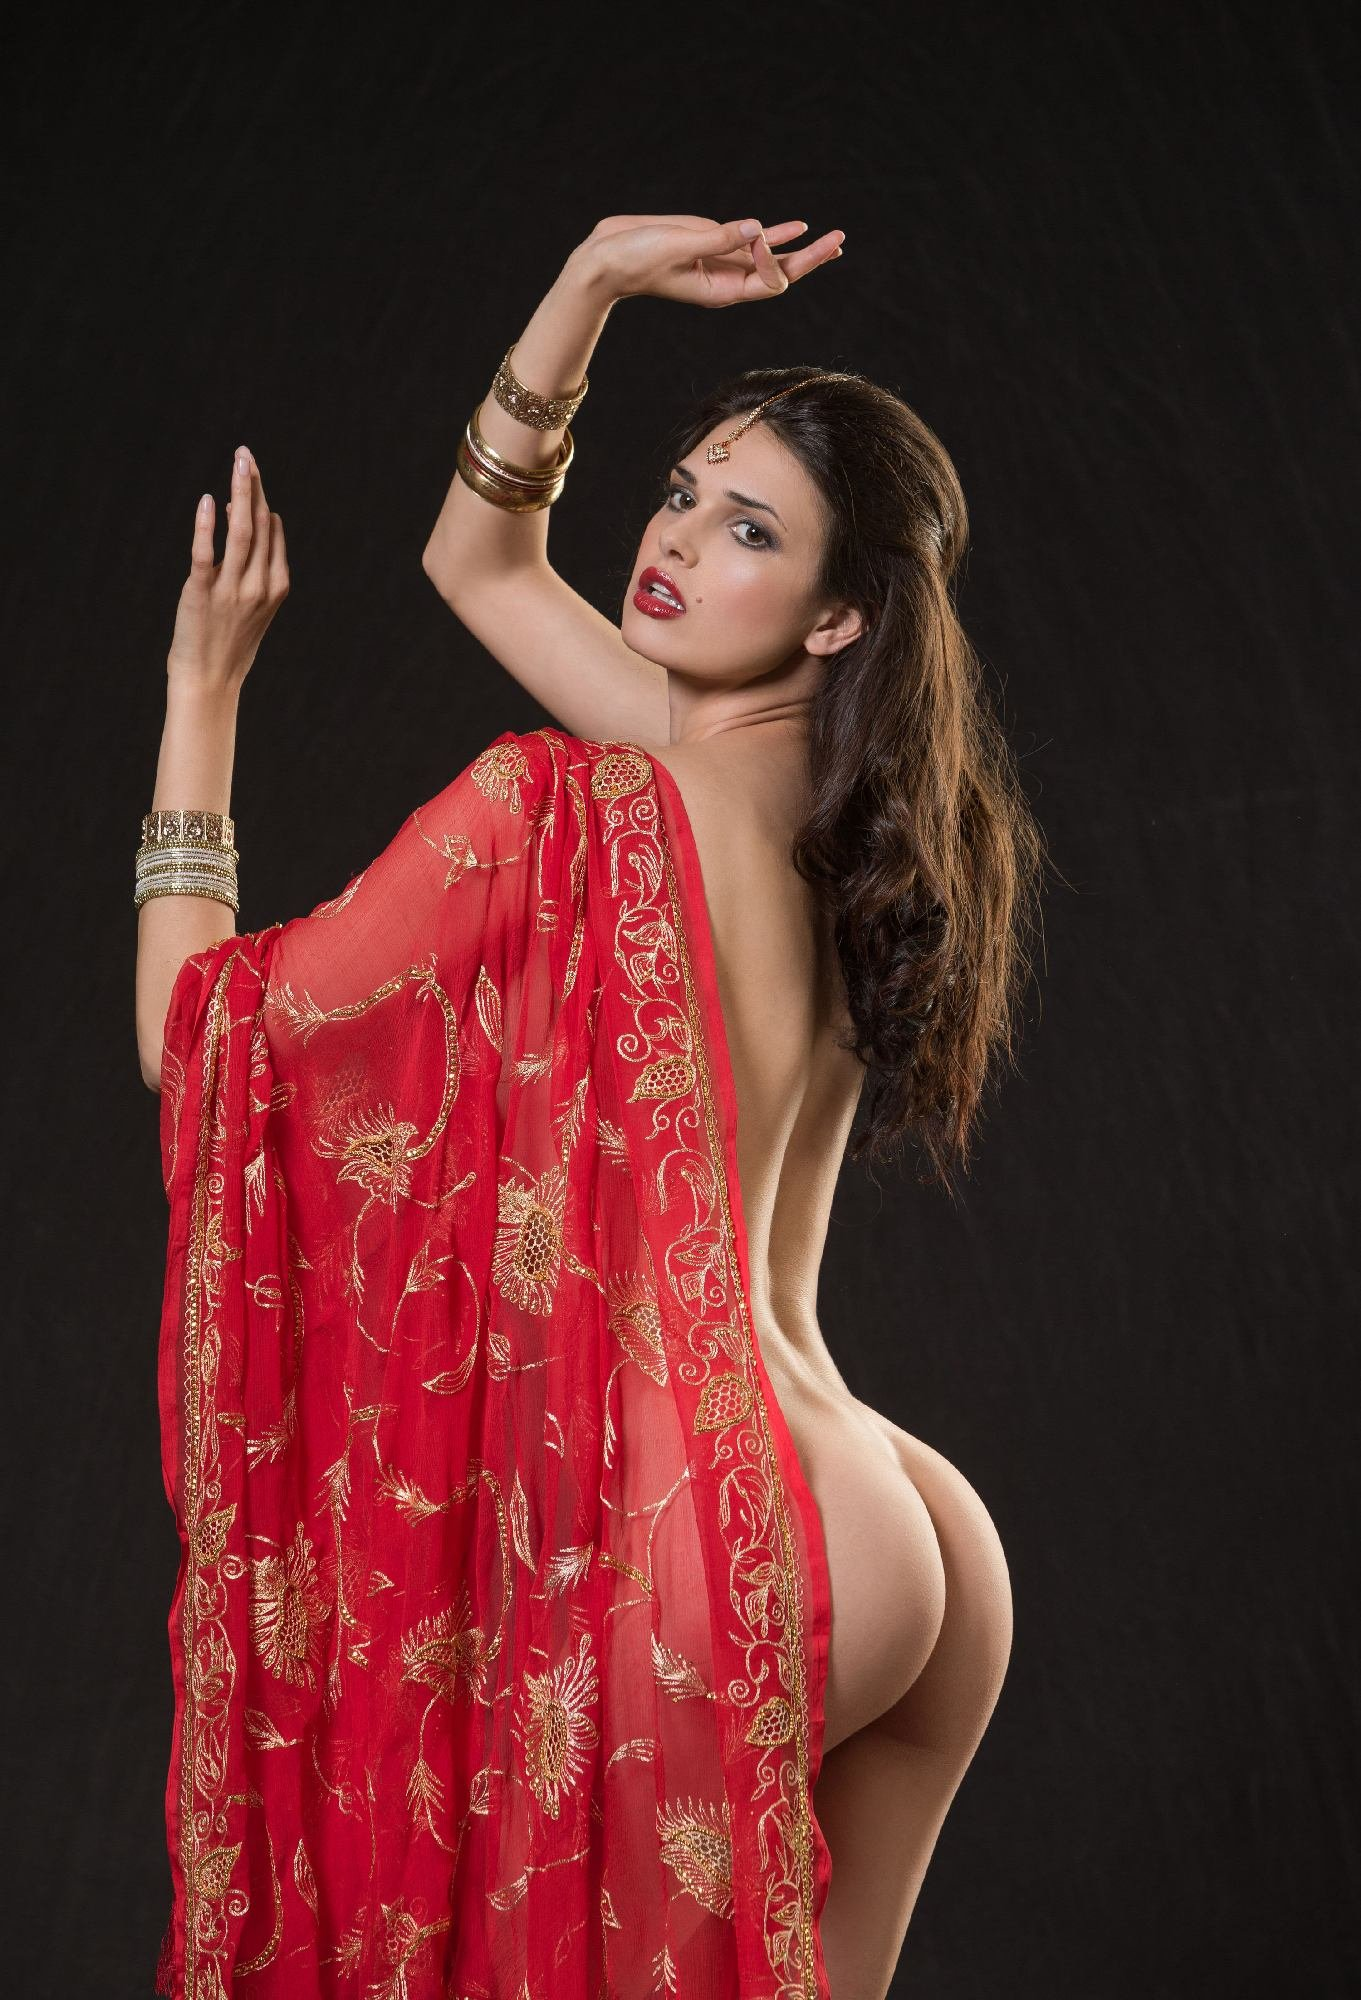 Beautiful indian nude women images 6